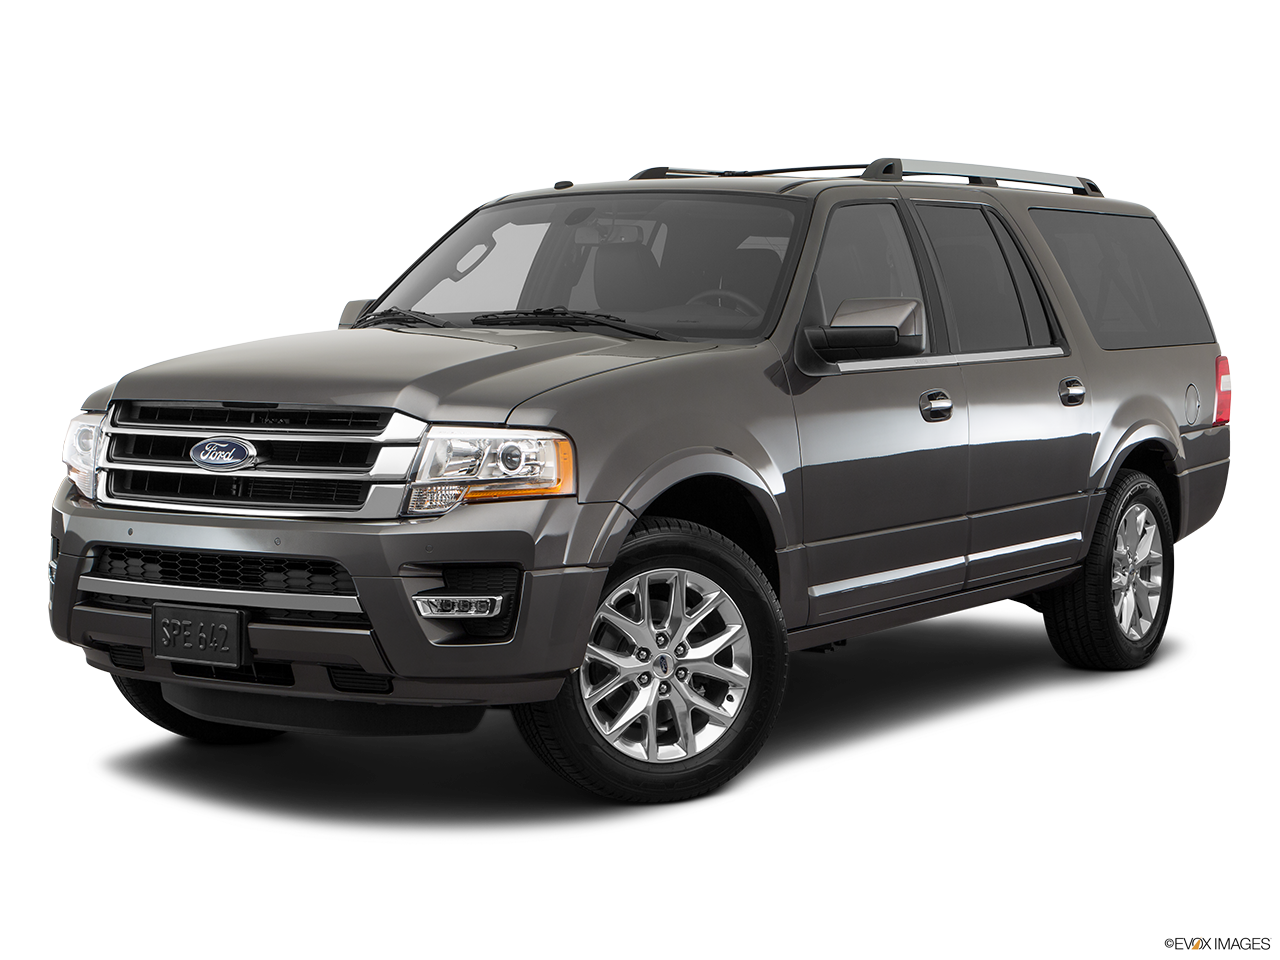 Test Drive A 2017 Ford Expedition at All Star Ford Canton in Canton